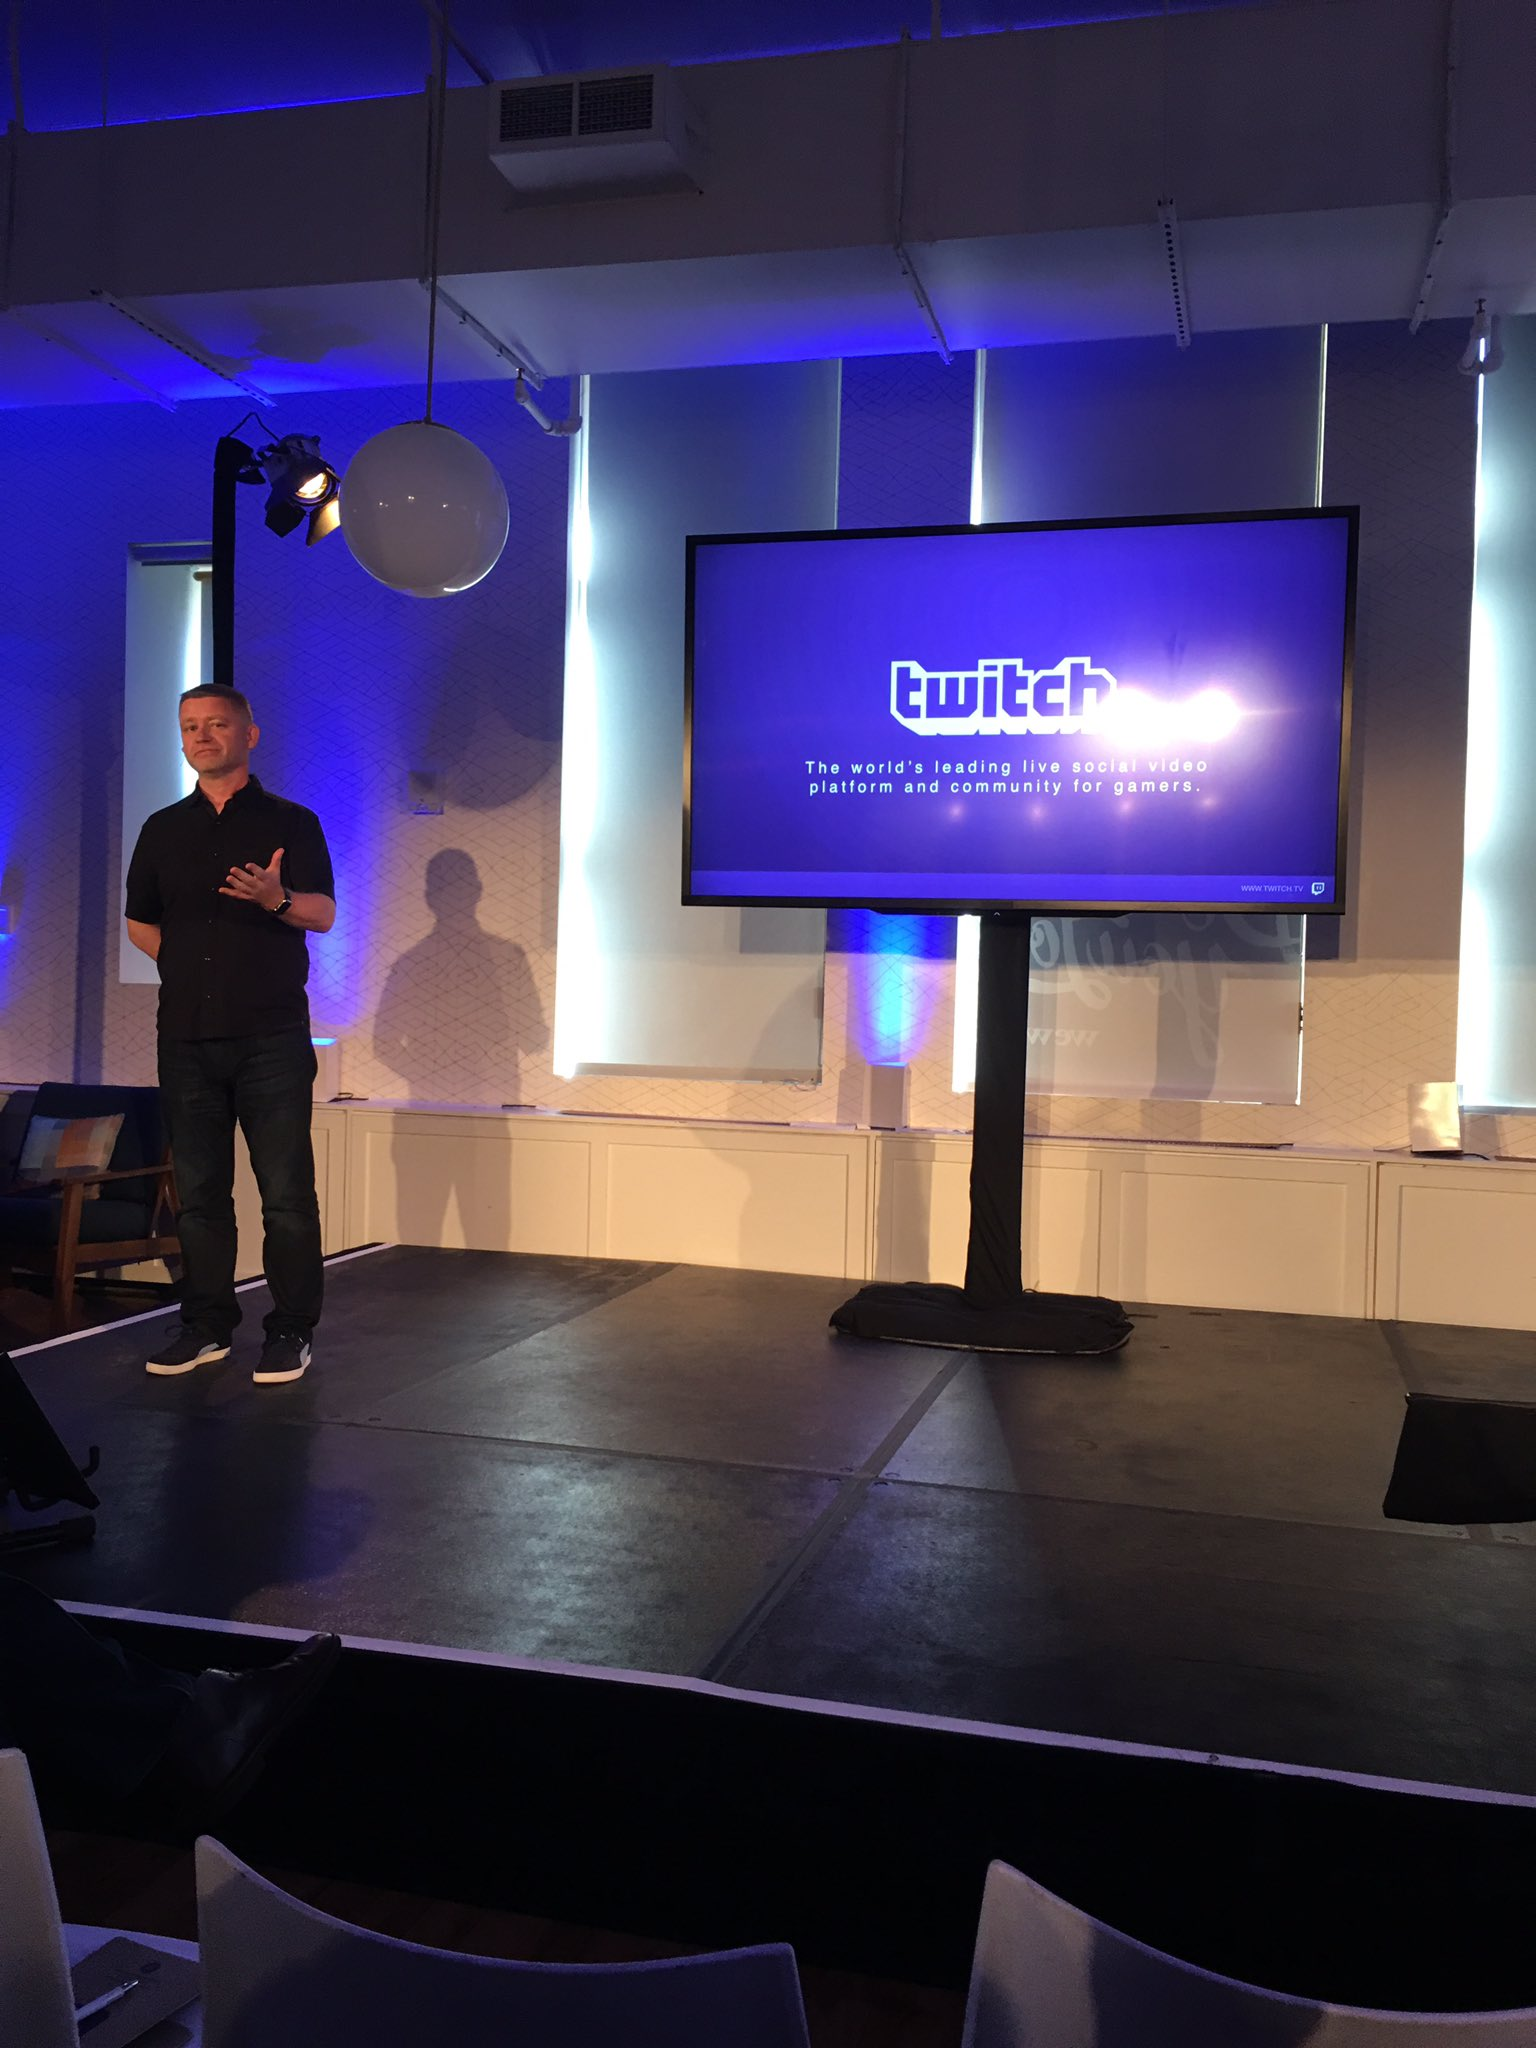 @Twitch: secret sauce-live chat & interaction... #AppFronts https://t.co/7mFVvjmZnk